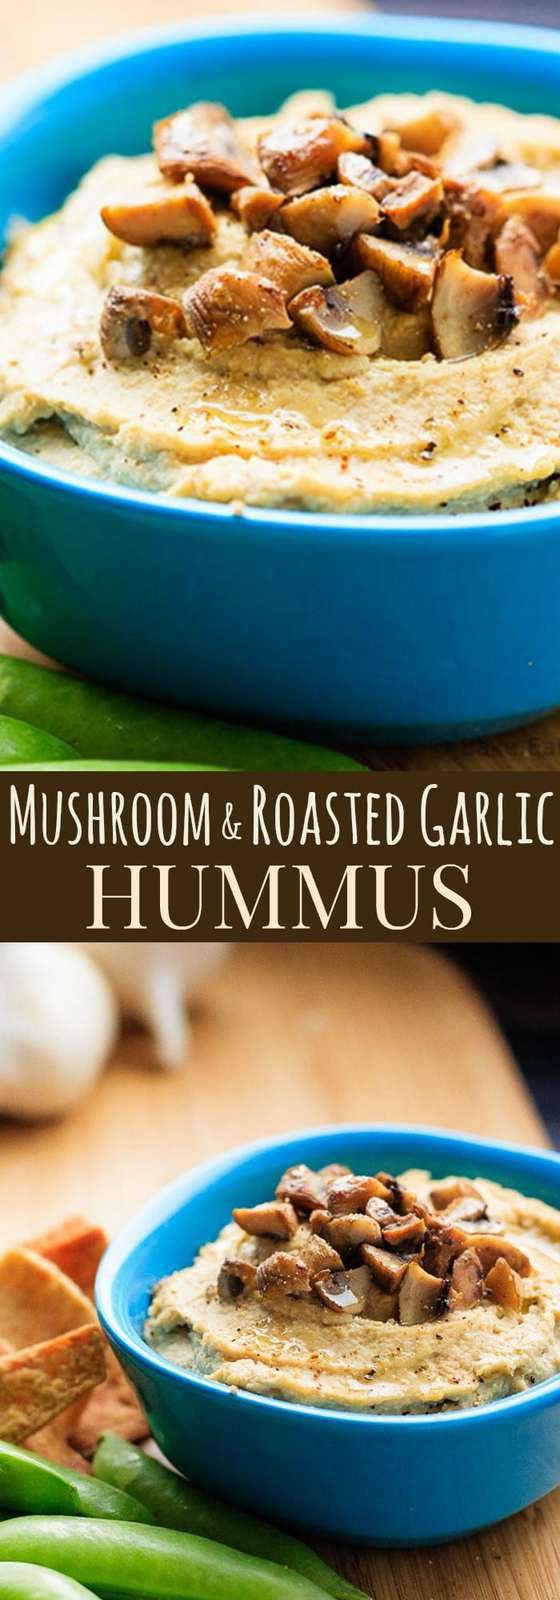 Mushroom and Roasted Garlic Hummus - everyone's favorite healthy dip recipe gets a flavor-packed makeover. | cupcakesandkalechips.com | gluten free, vegan